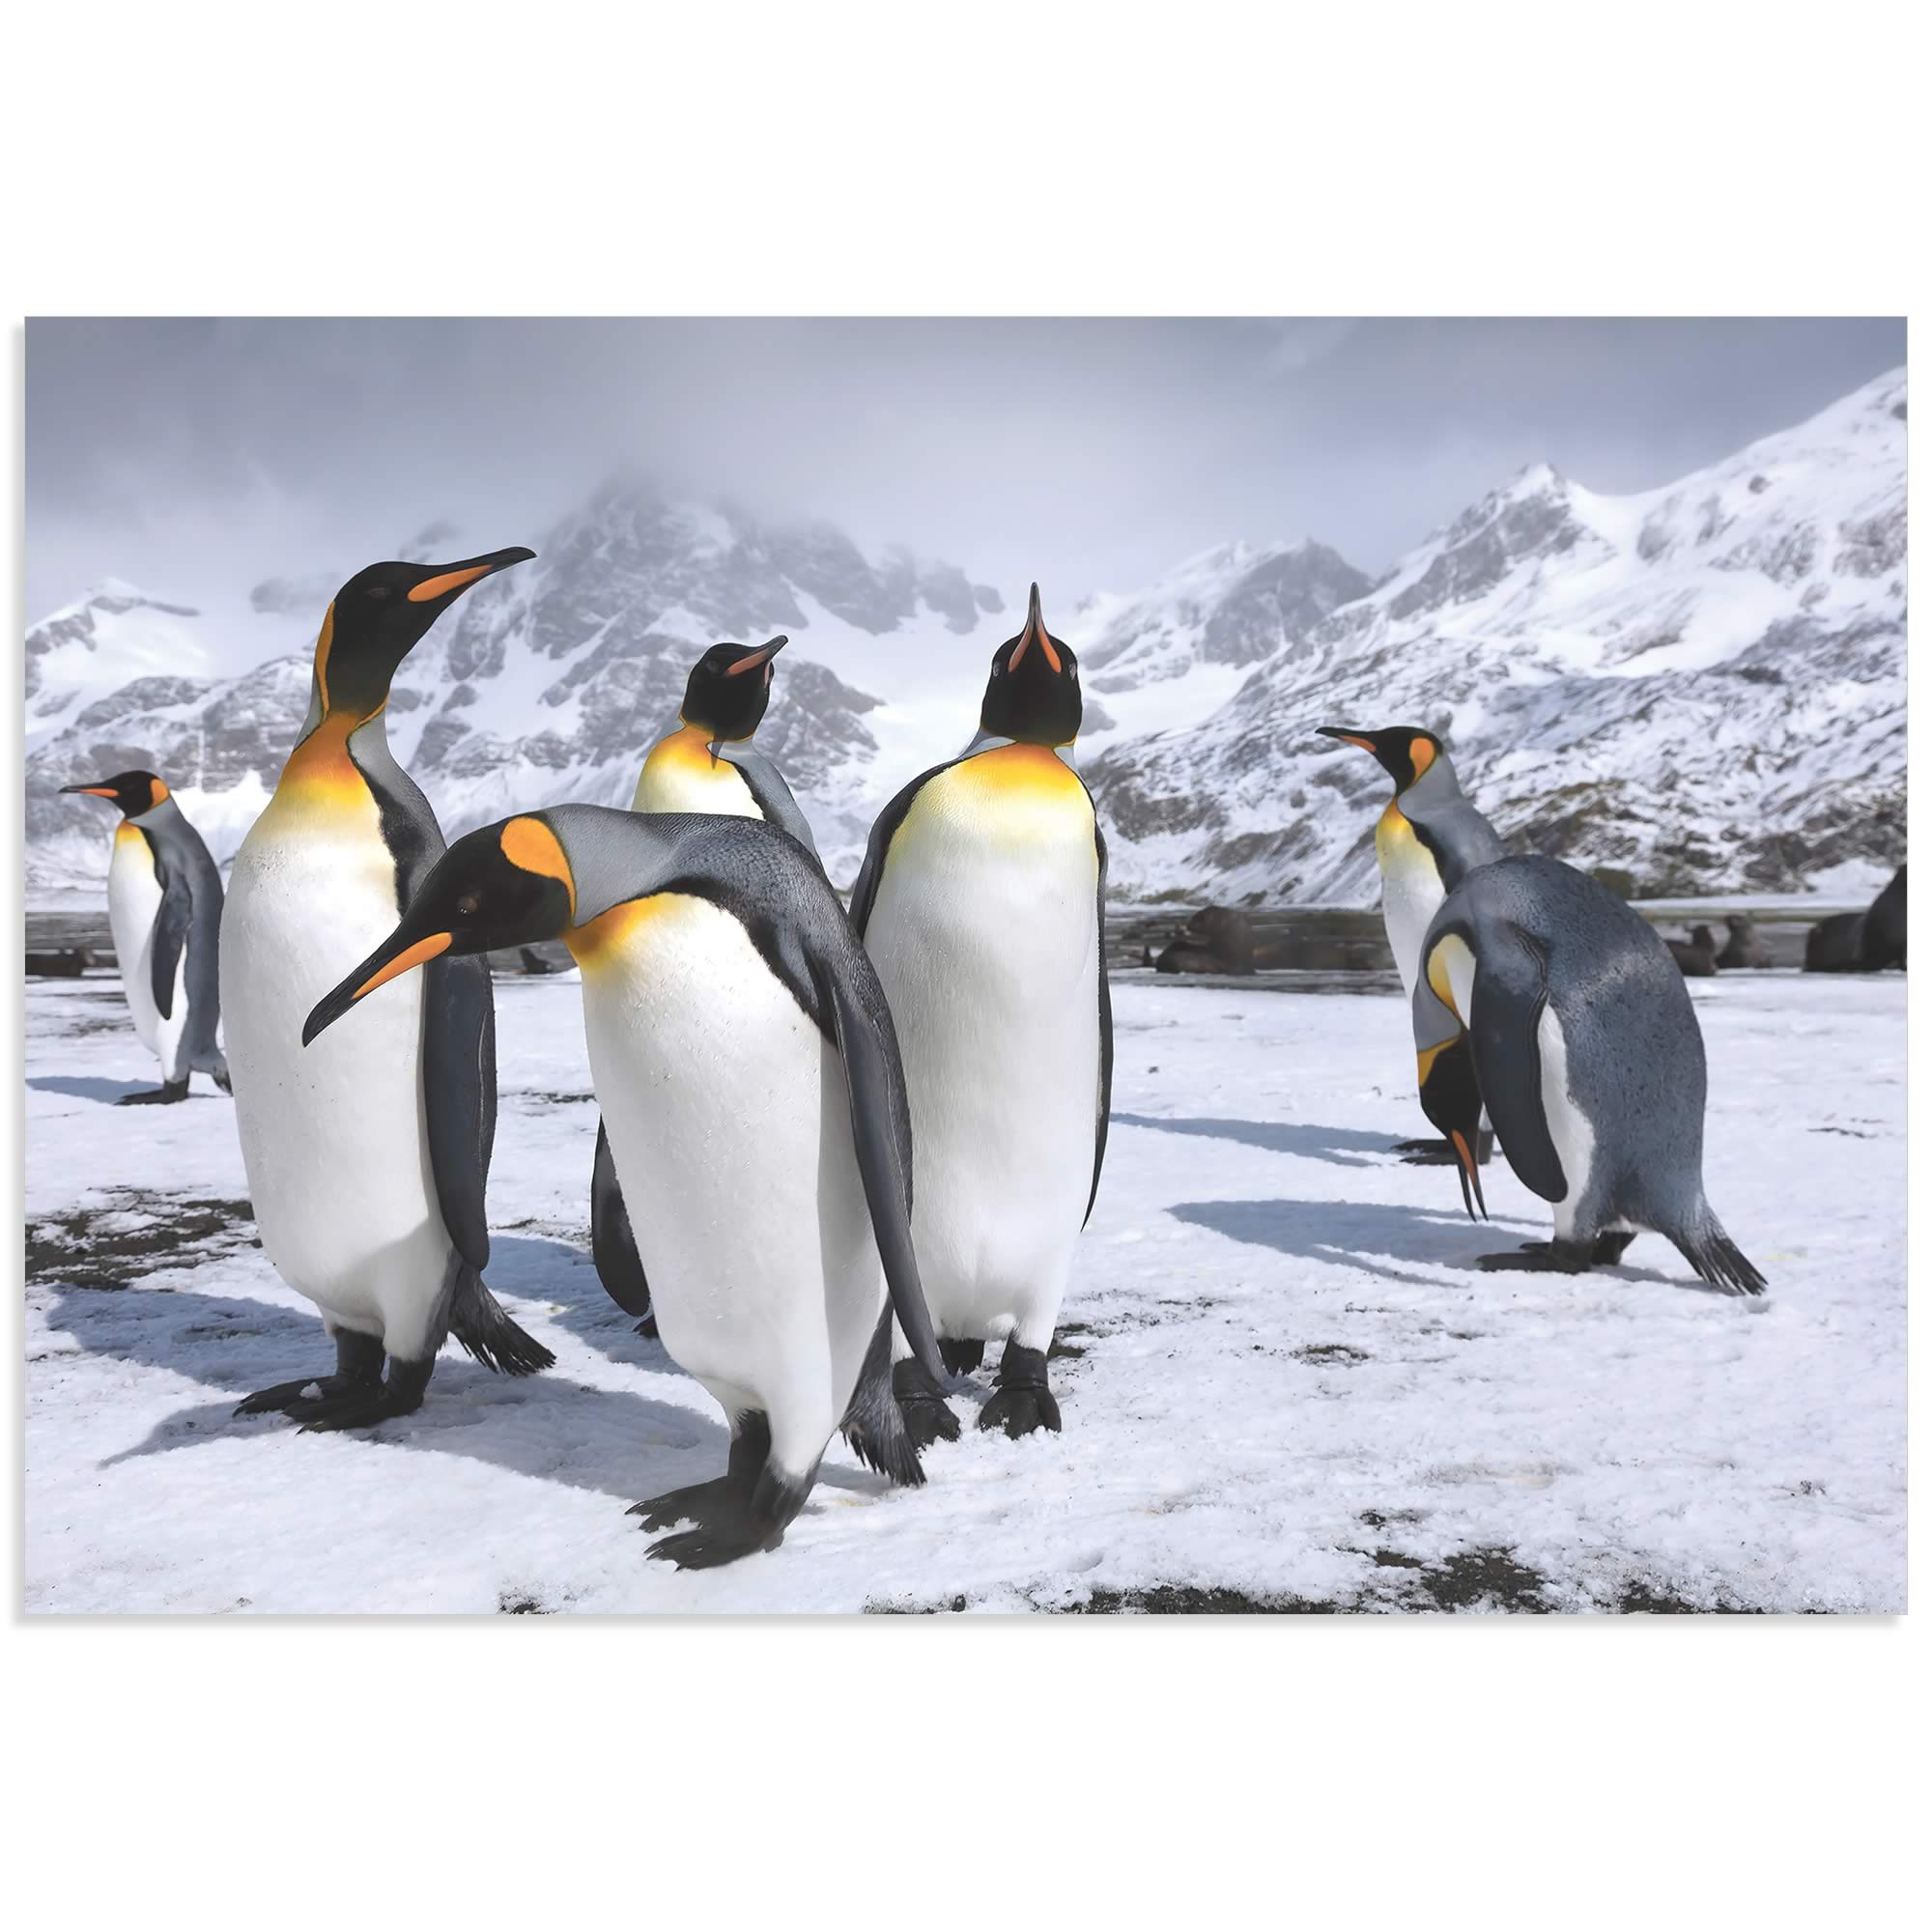 King Penguins At The Bay By Steph Oli